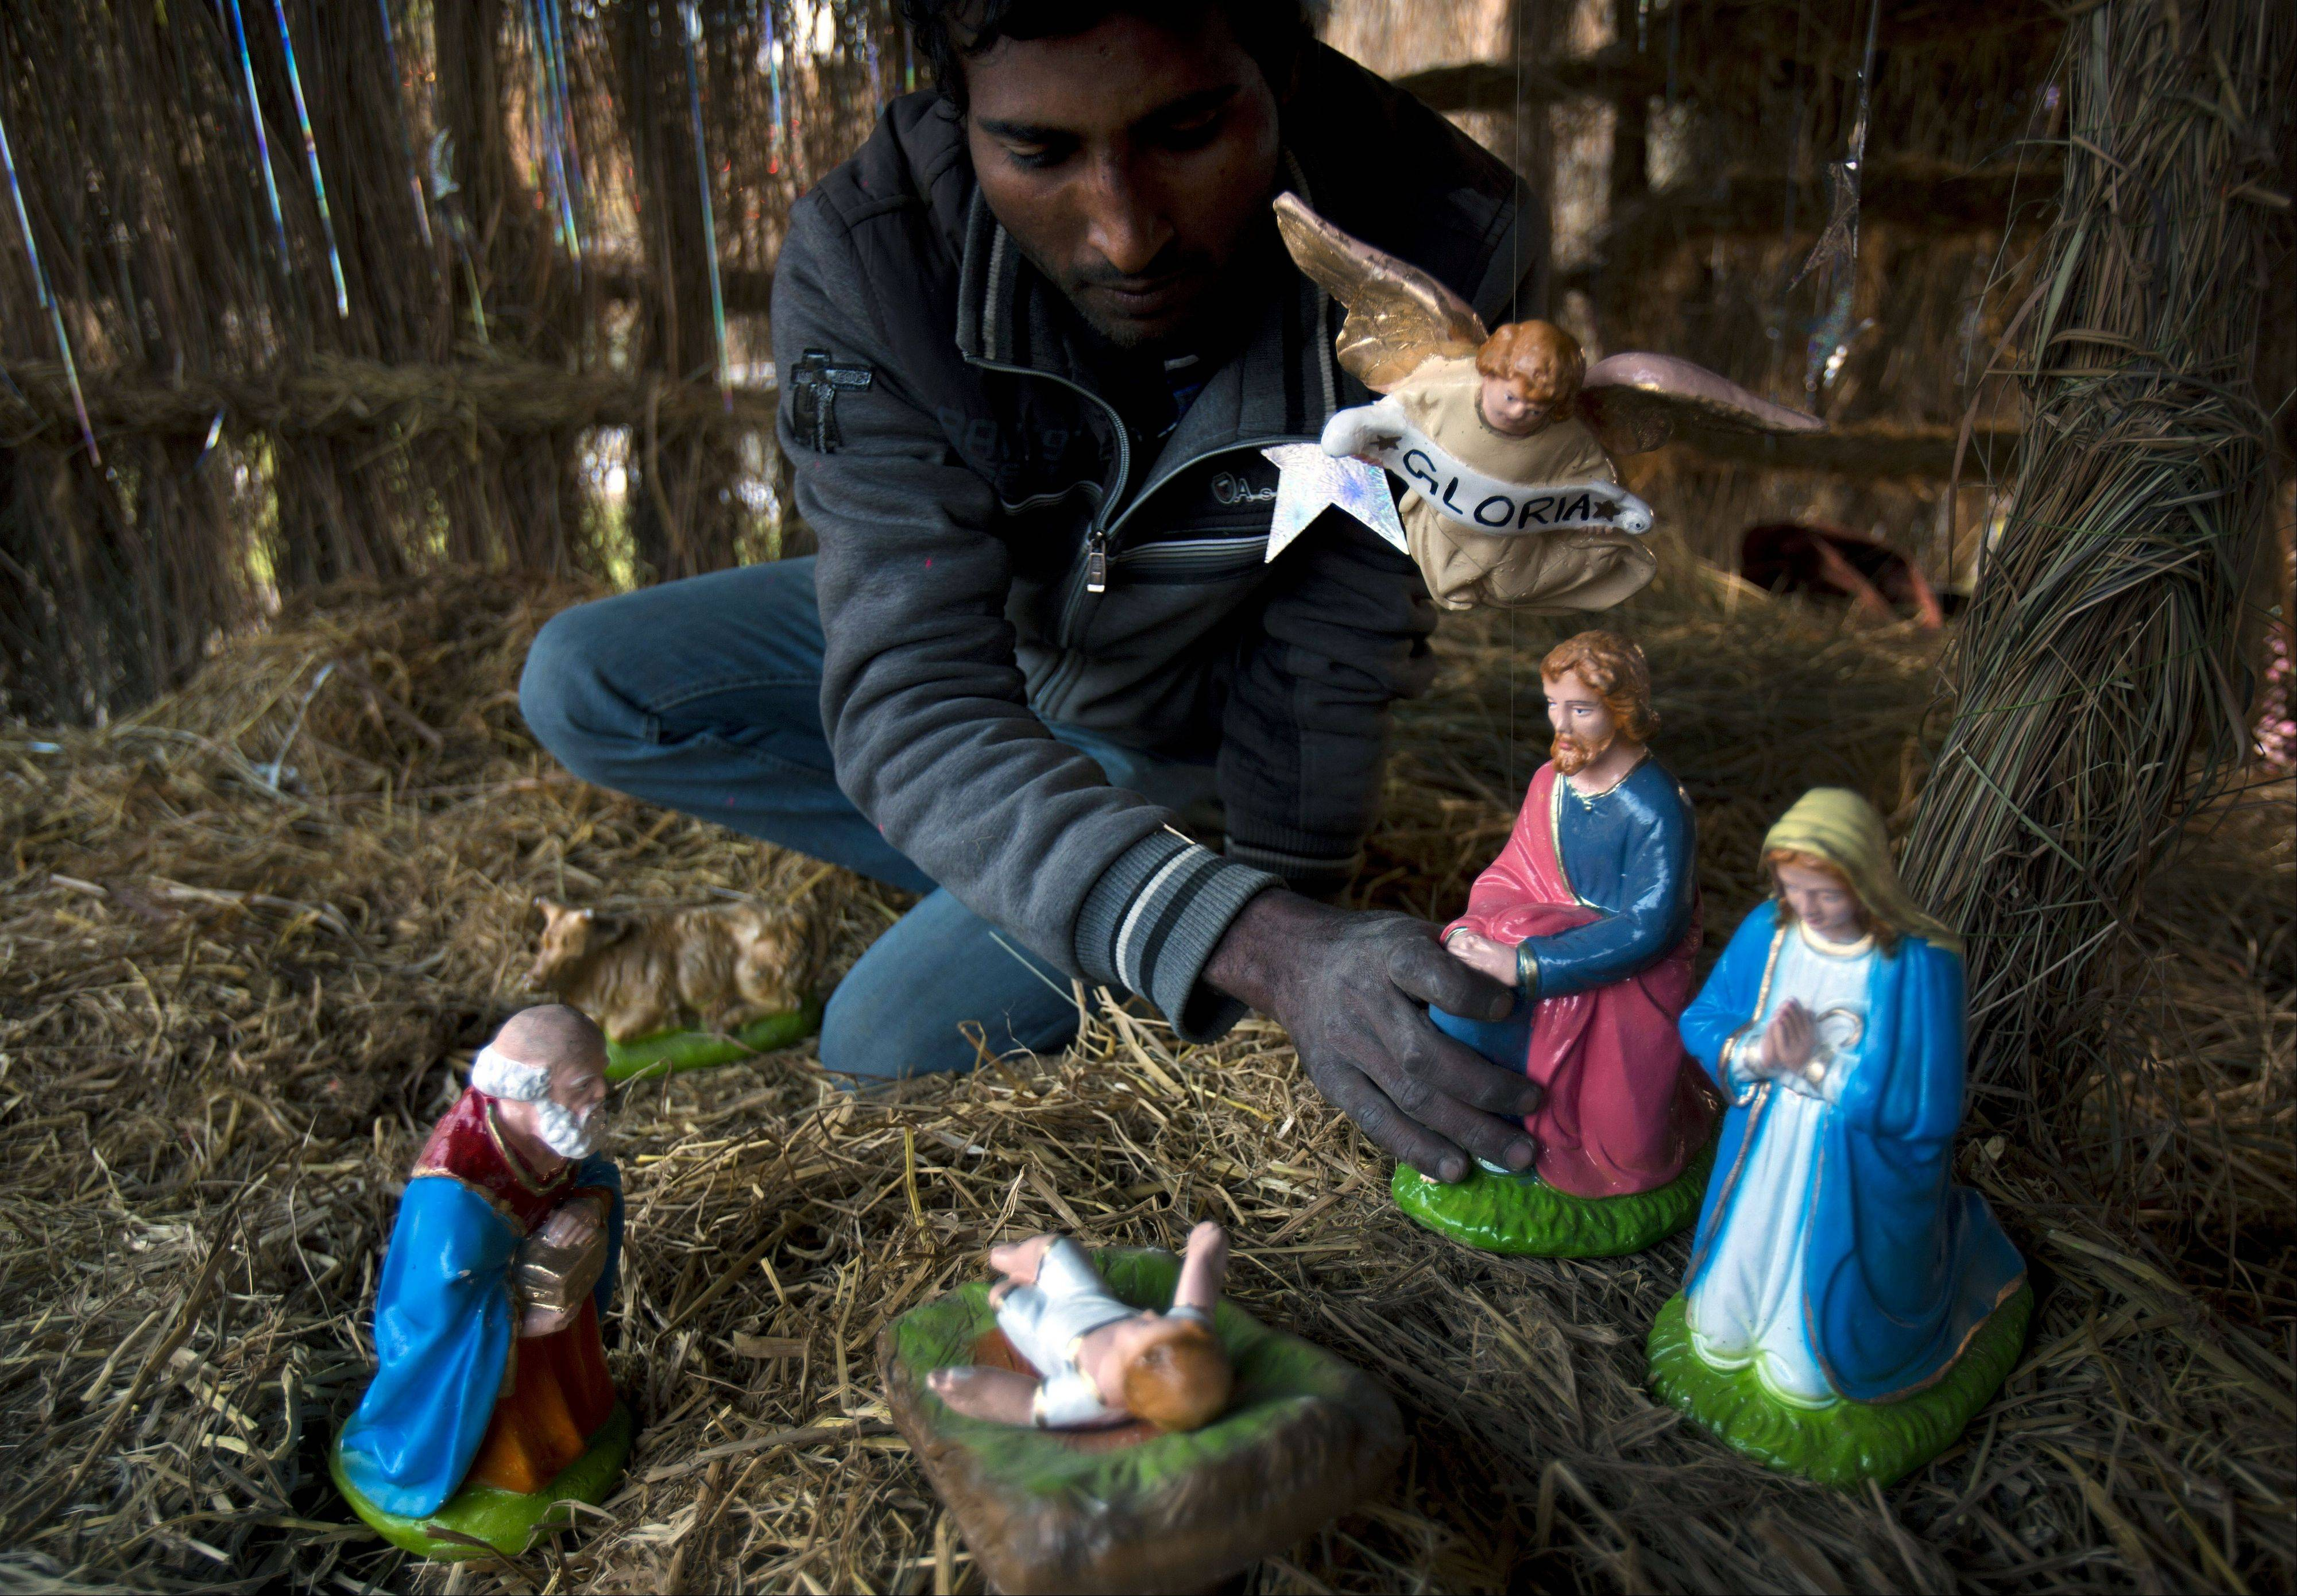 Pakistani Christian Salamat Masih prepares a scene of nativity for Christmas celebrations in the slums of Islamabad, Pakistan, Tuesday, Dec. 24, 2013. Christians are a minority in Pakistan, they constitute about 1.6% of the Pakistan�s population.